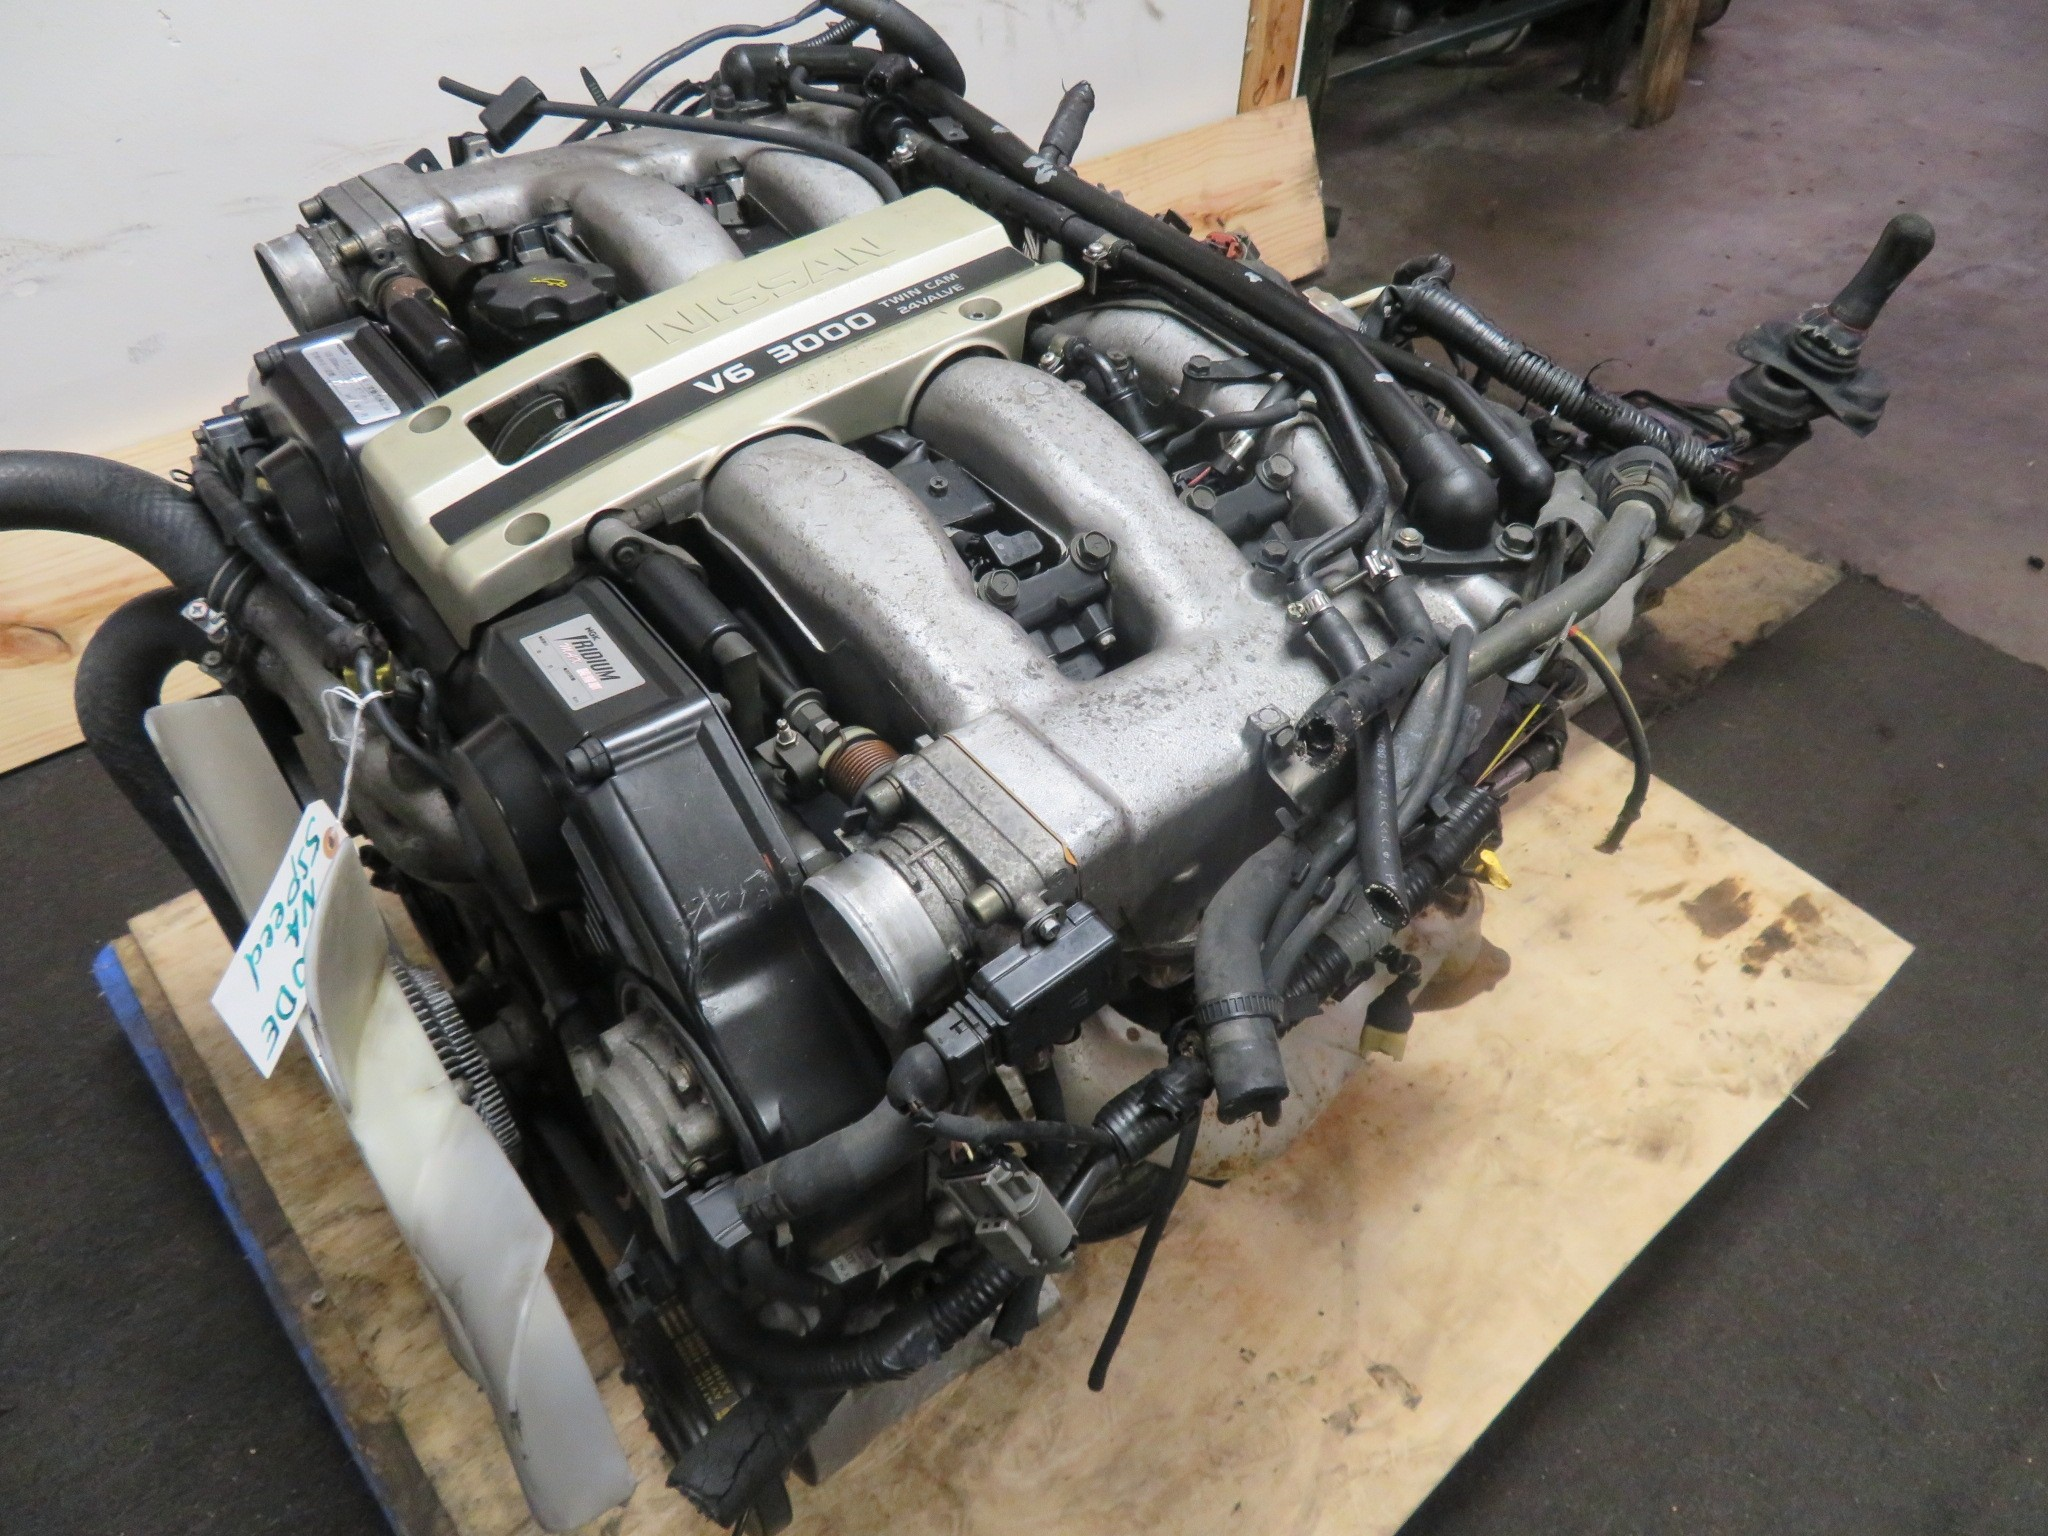 90-96 JDM NISSAN 300ZX VG30DE NON TURBO 3.0L V6 ENGINE & 5 SPEED TRANSMISSION